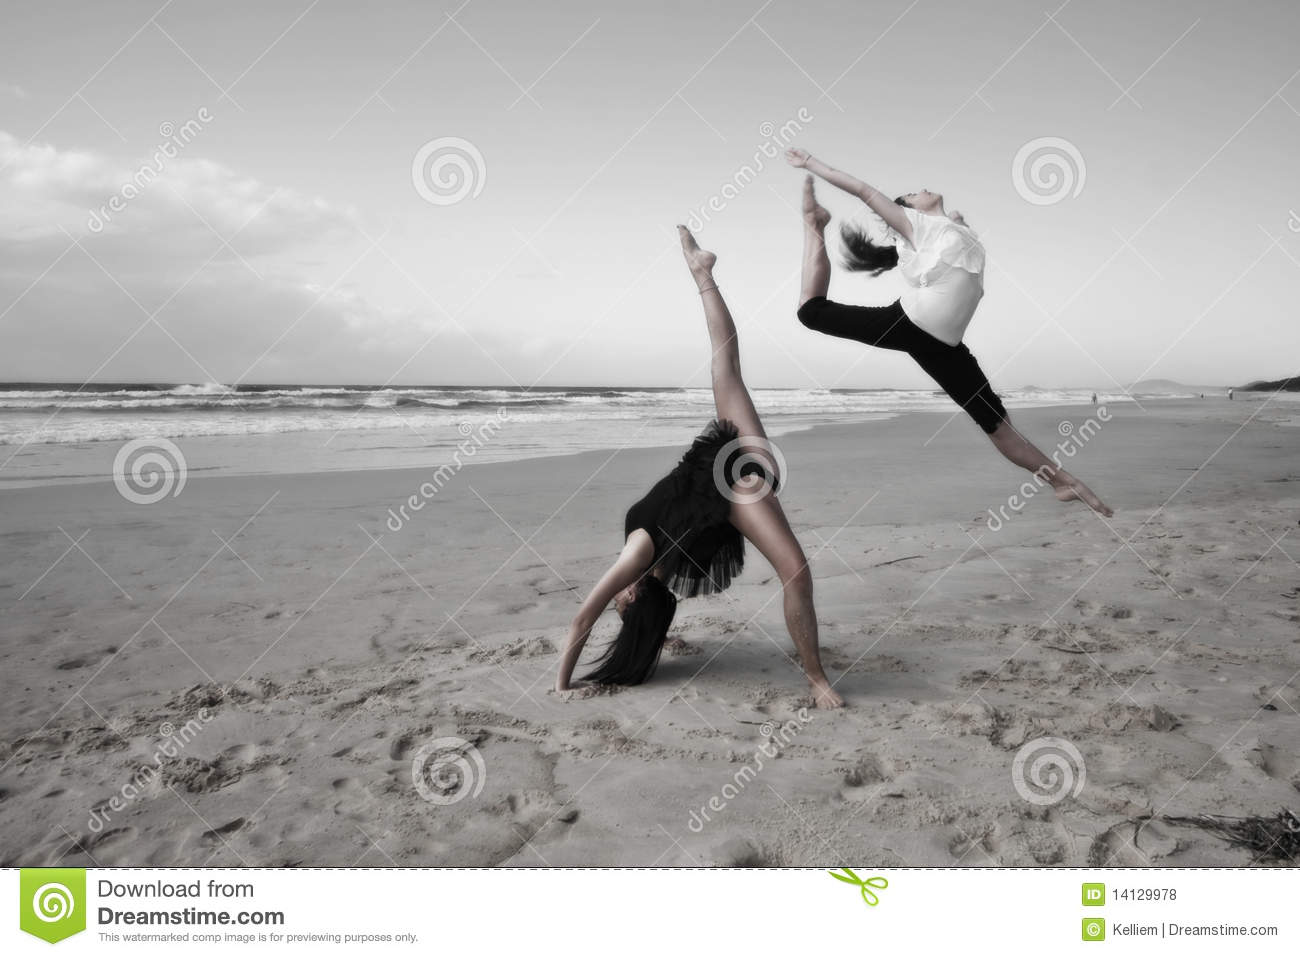 Girls dancing on beach